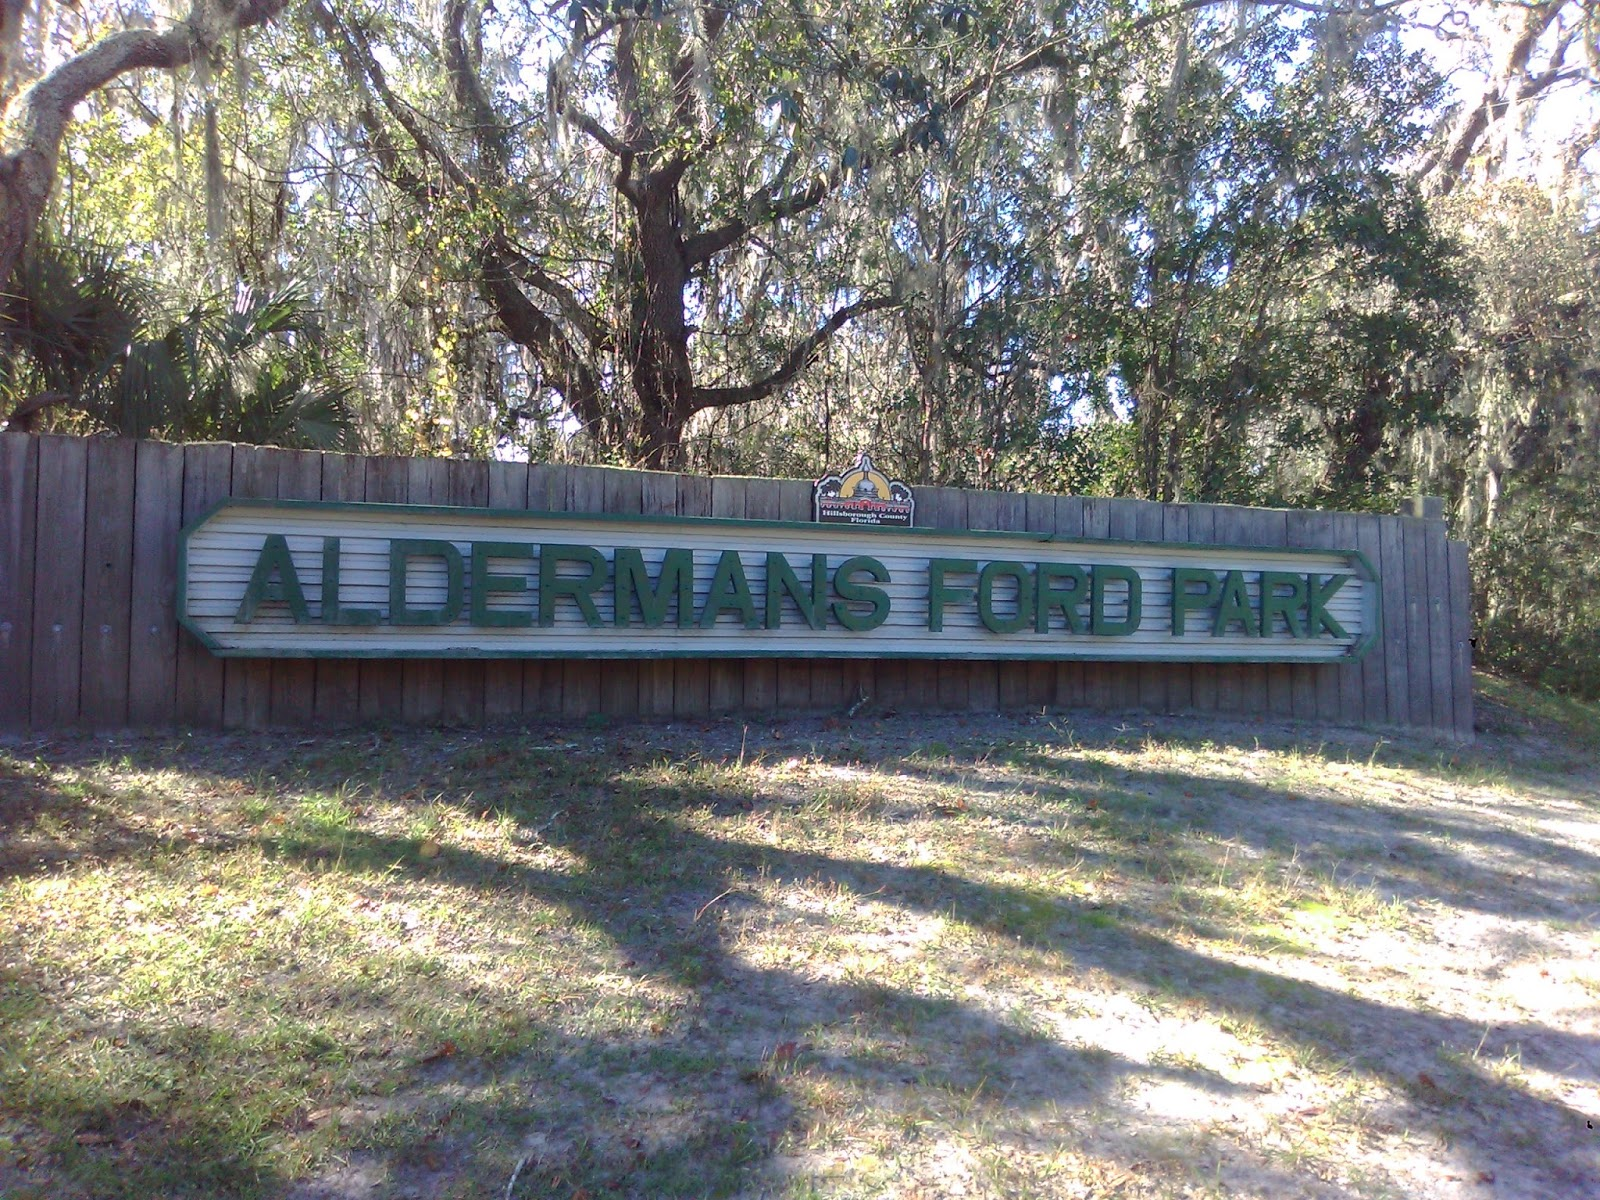 Trails And Waterways Alderman S Ford Park